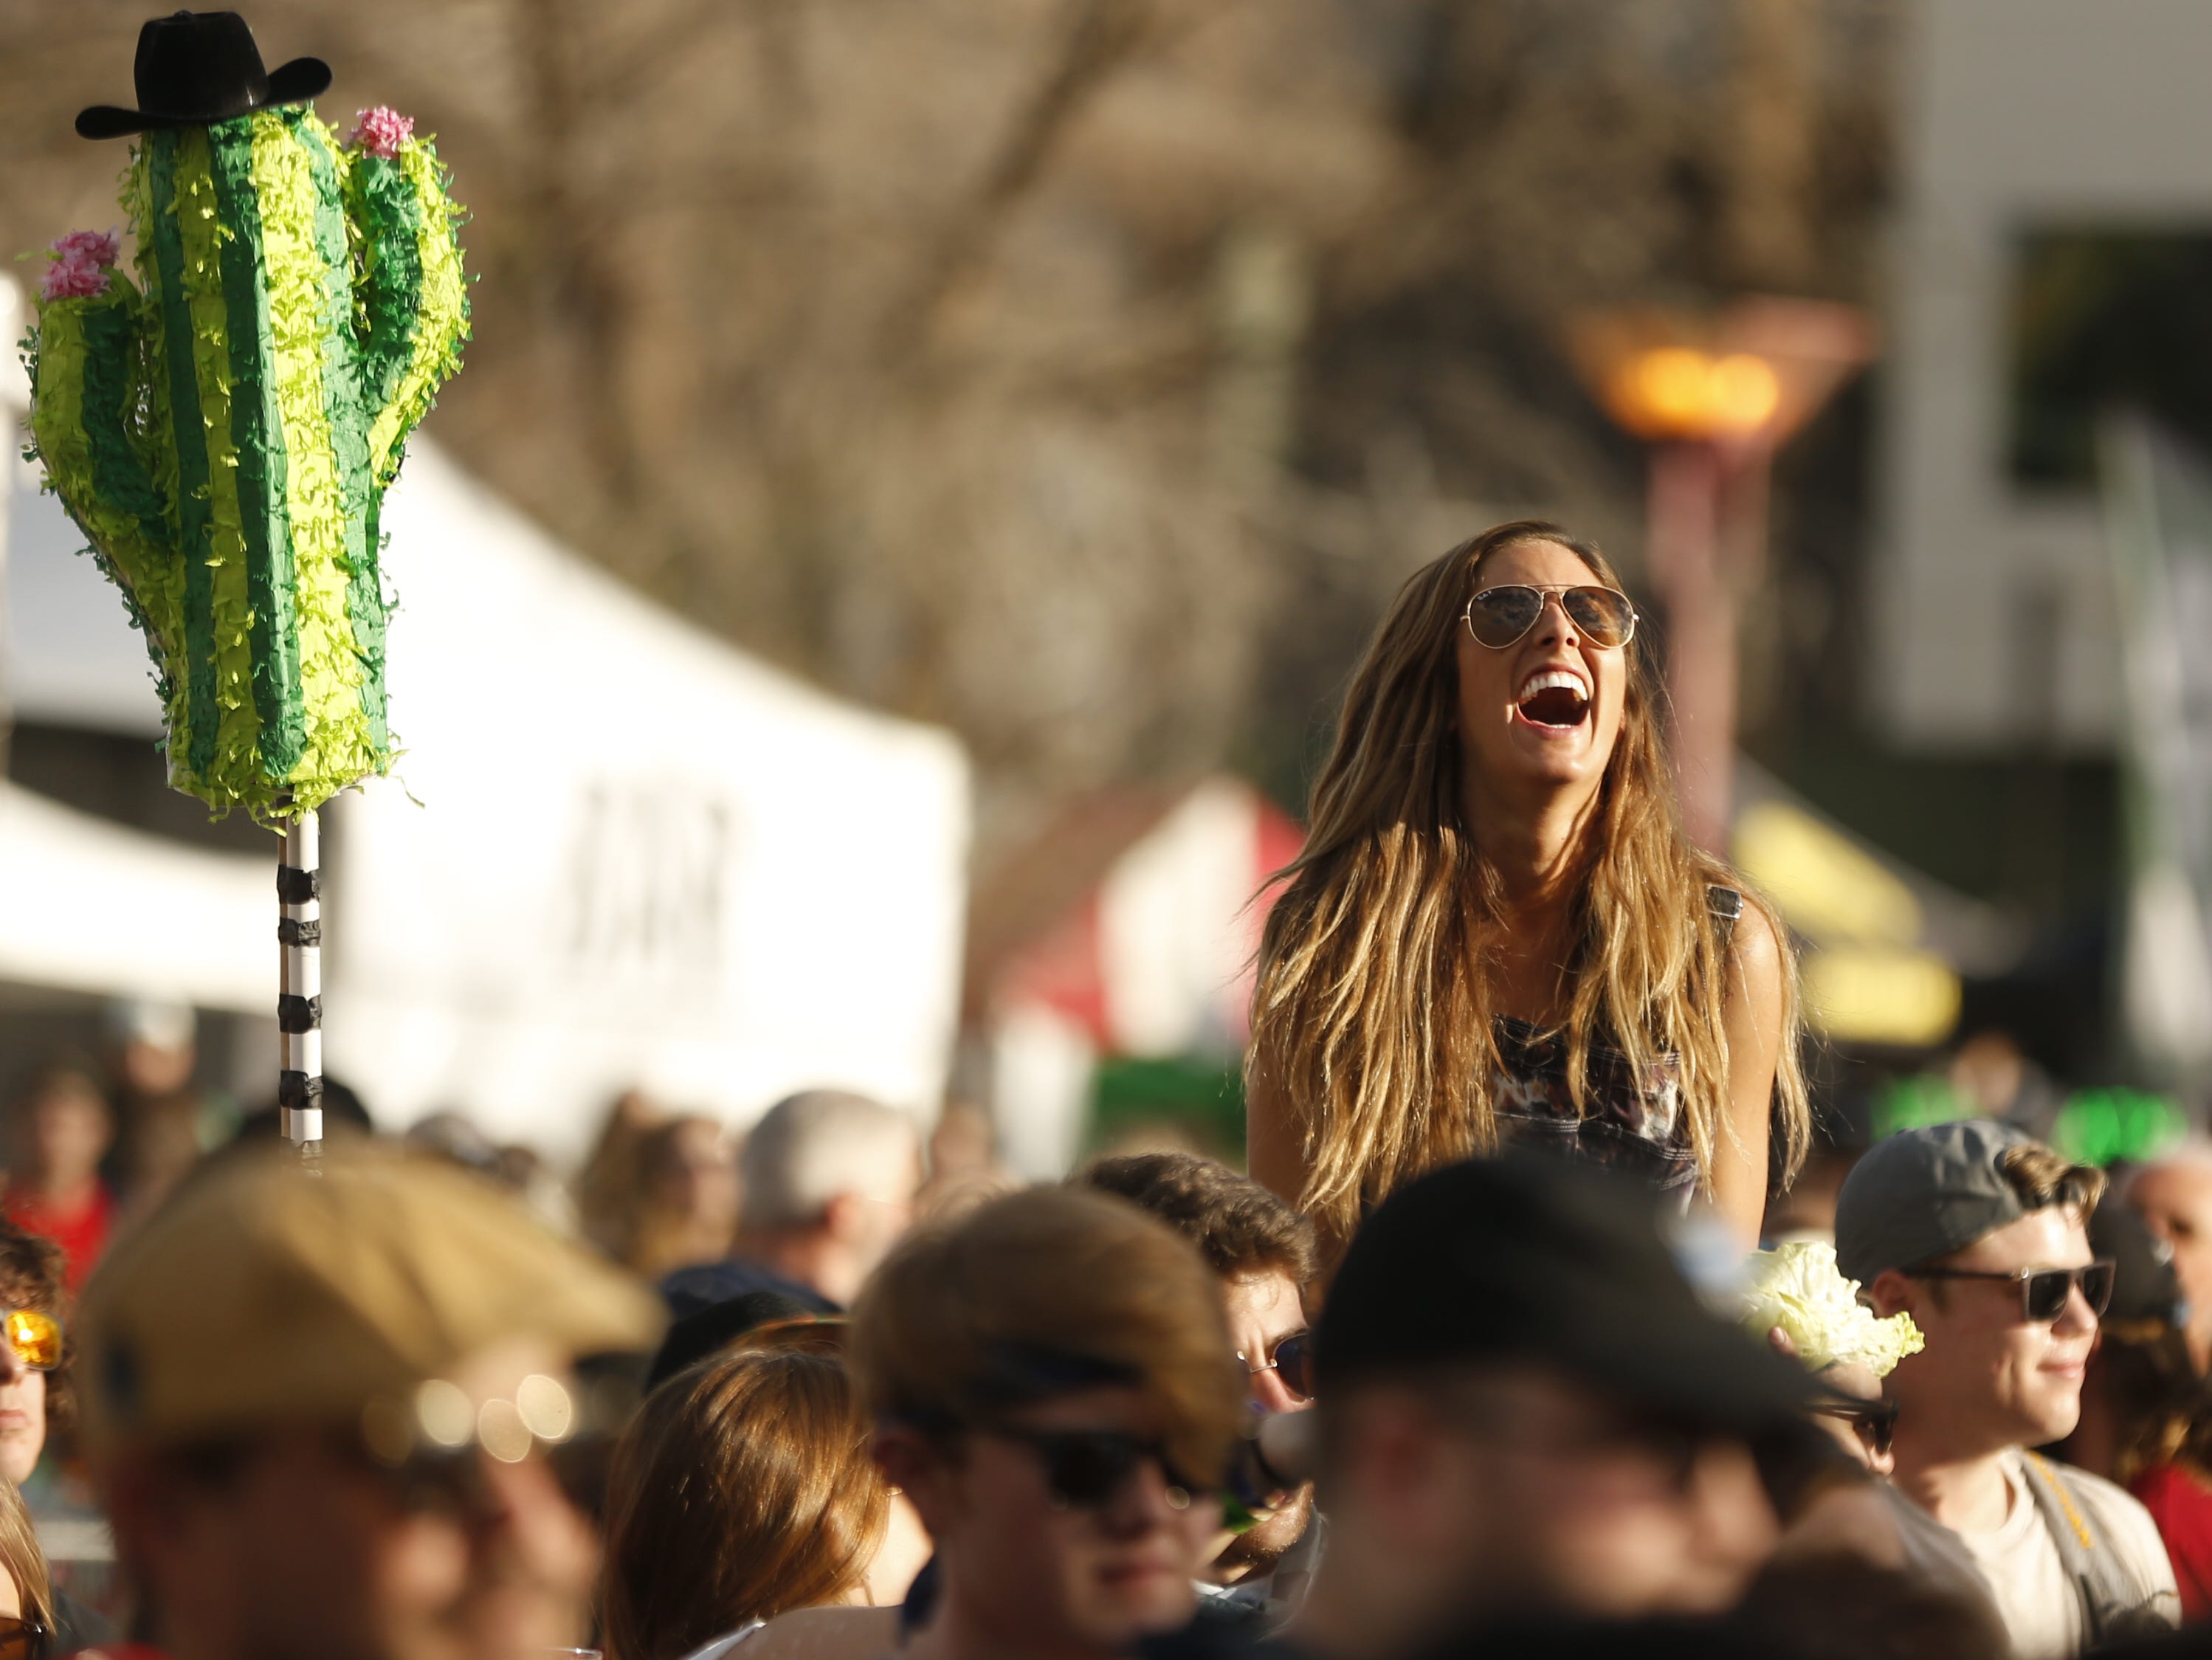 A fan laughs listen to the band Lettuce during the McDowell Mountain Music Festival in Phoenix on March 2, 2019.